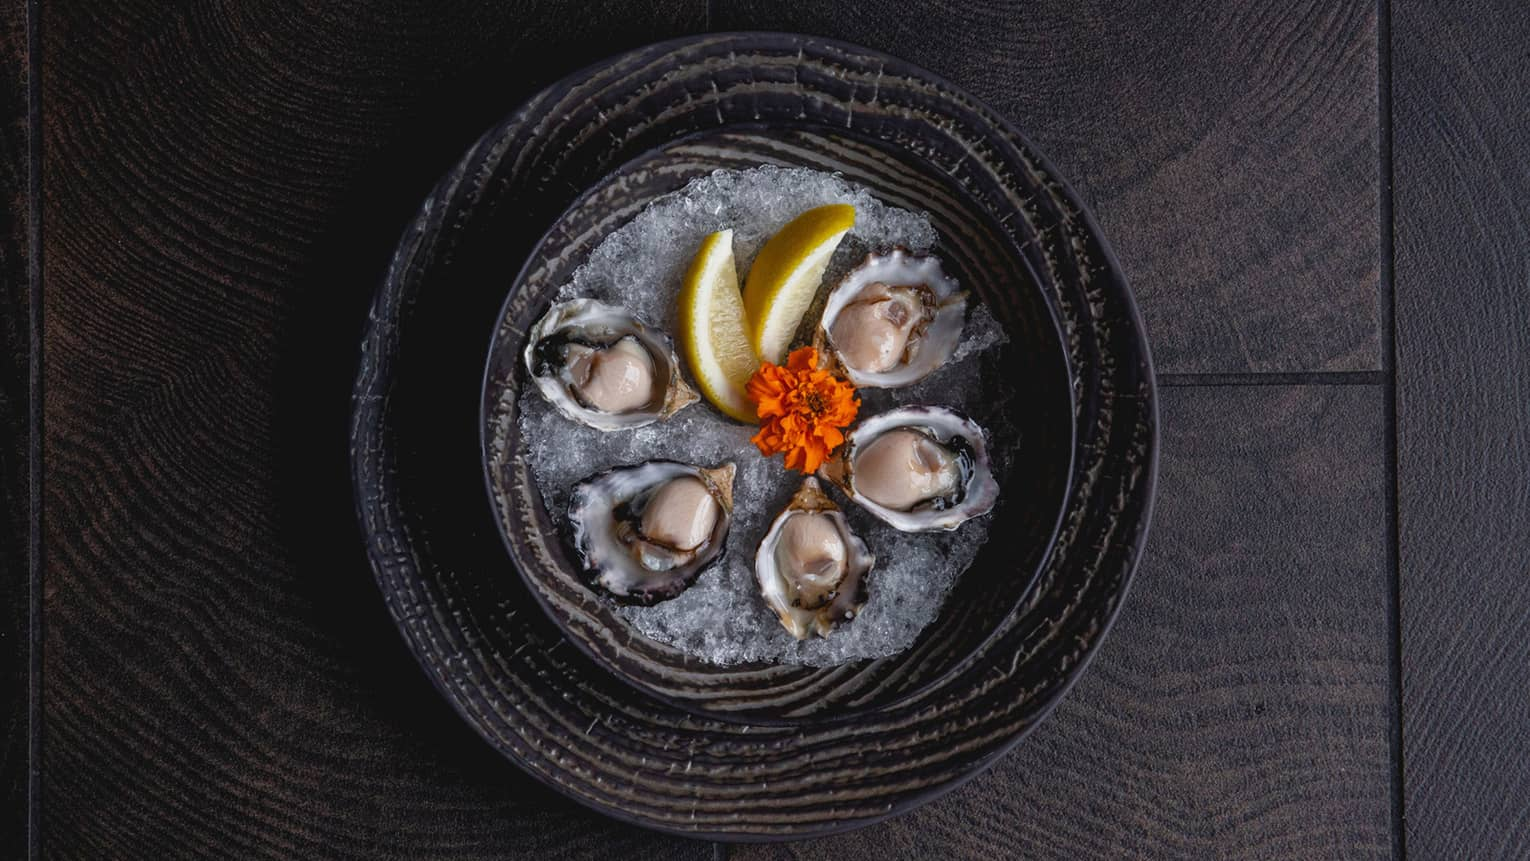 Aerial view of platter with oysters, lemon wedges, red flower on ice